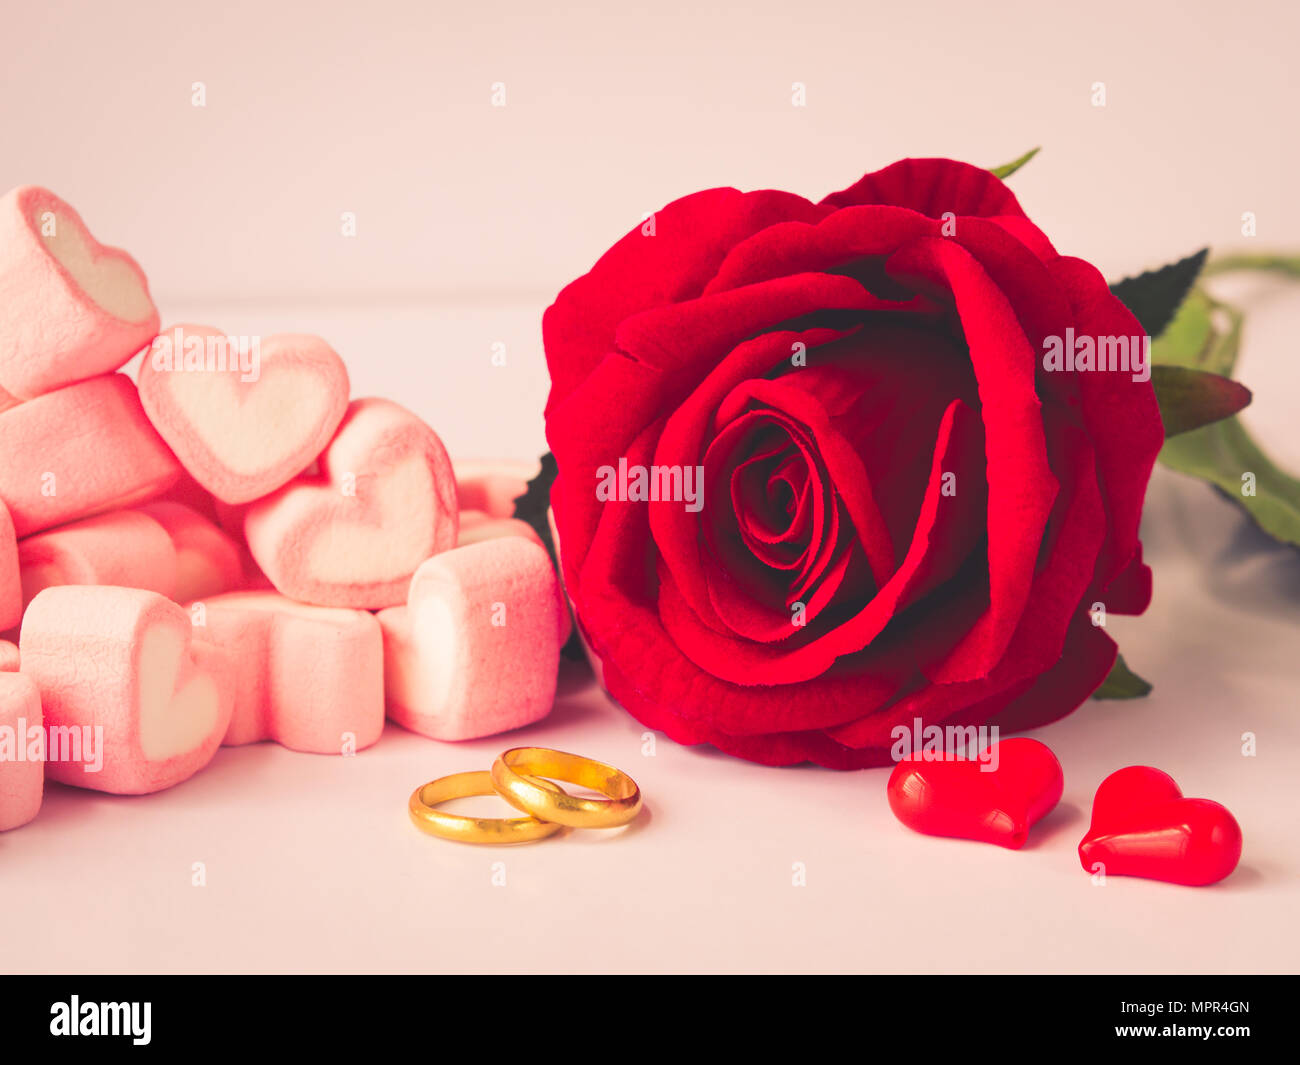 Romantic Red Rose With Golden Rings And Red Hearts On